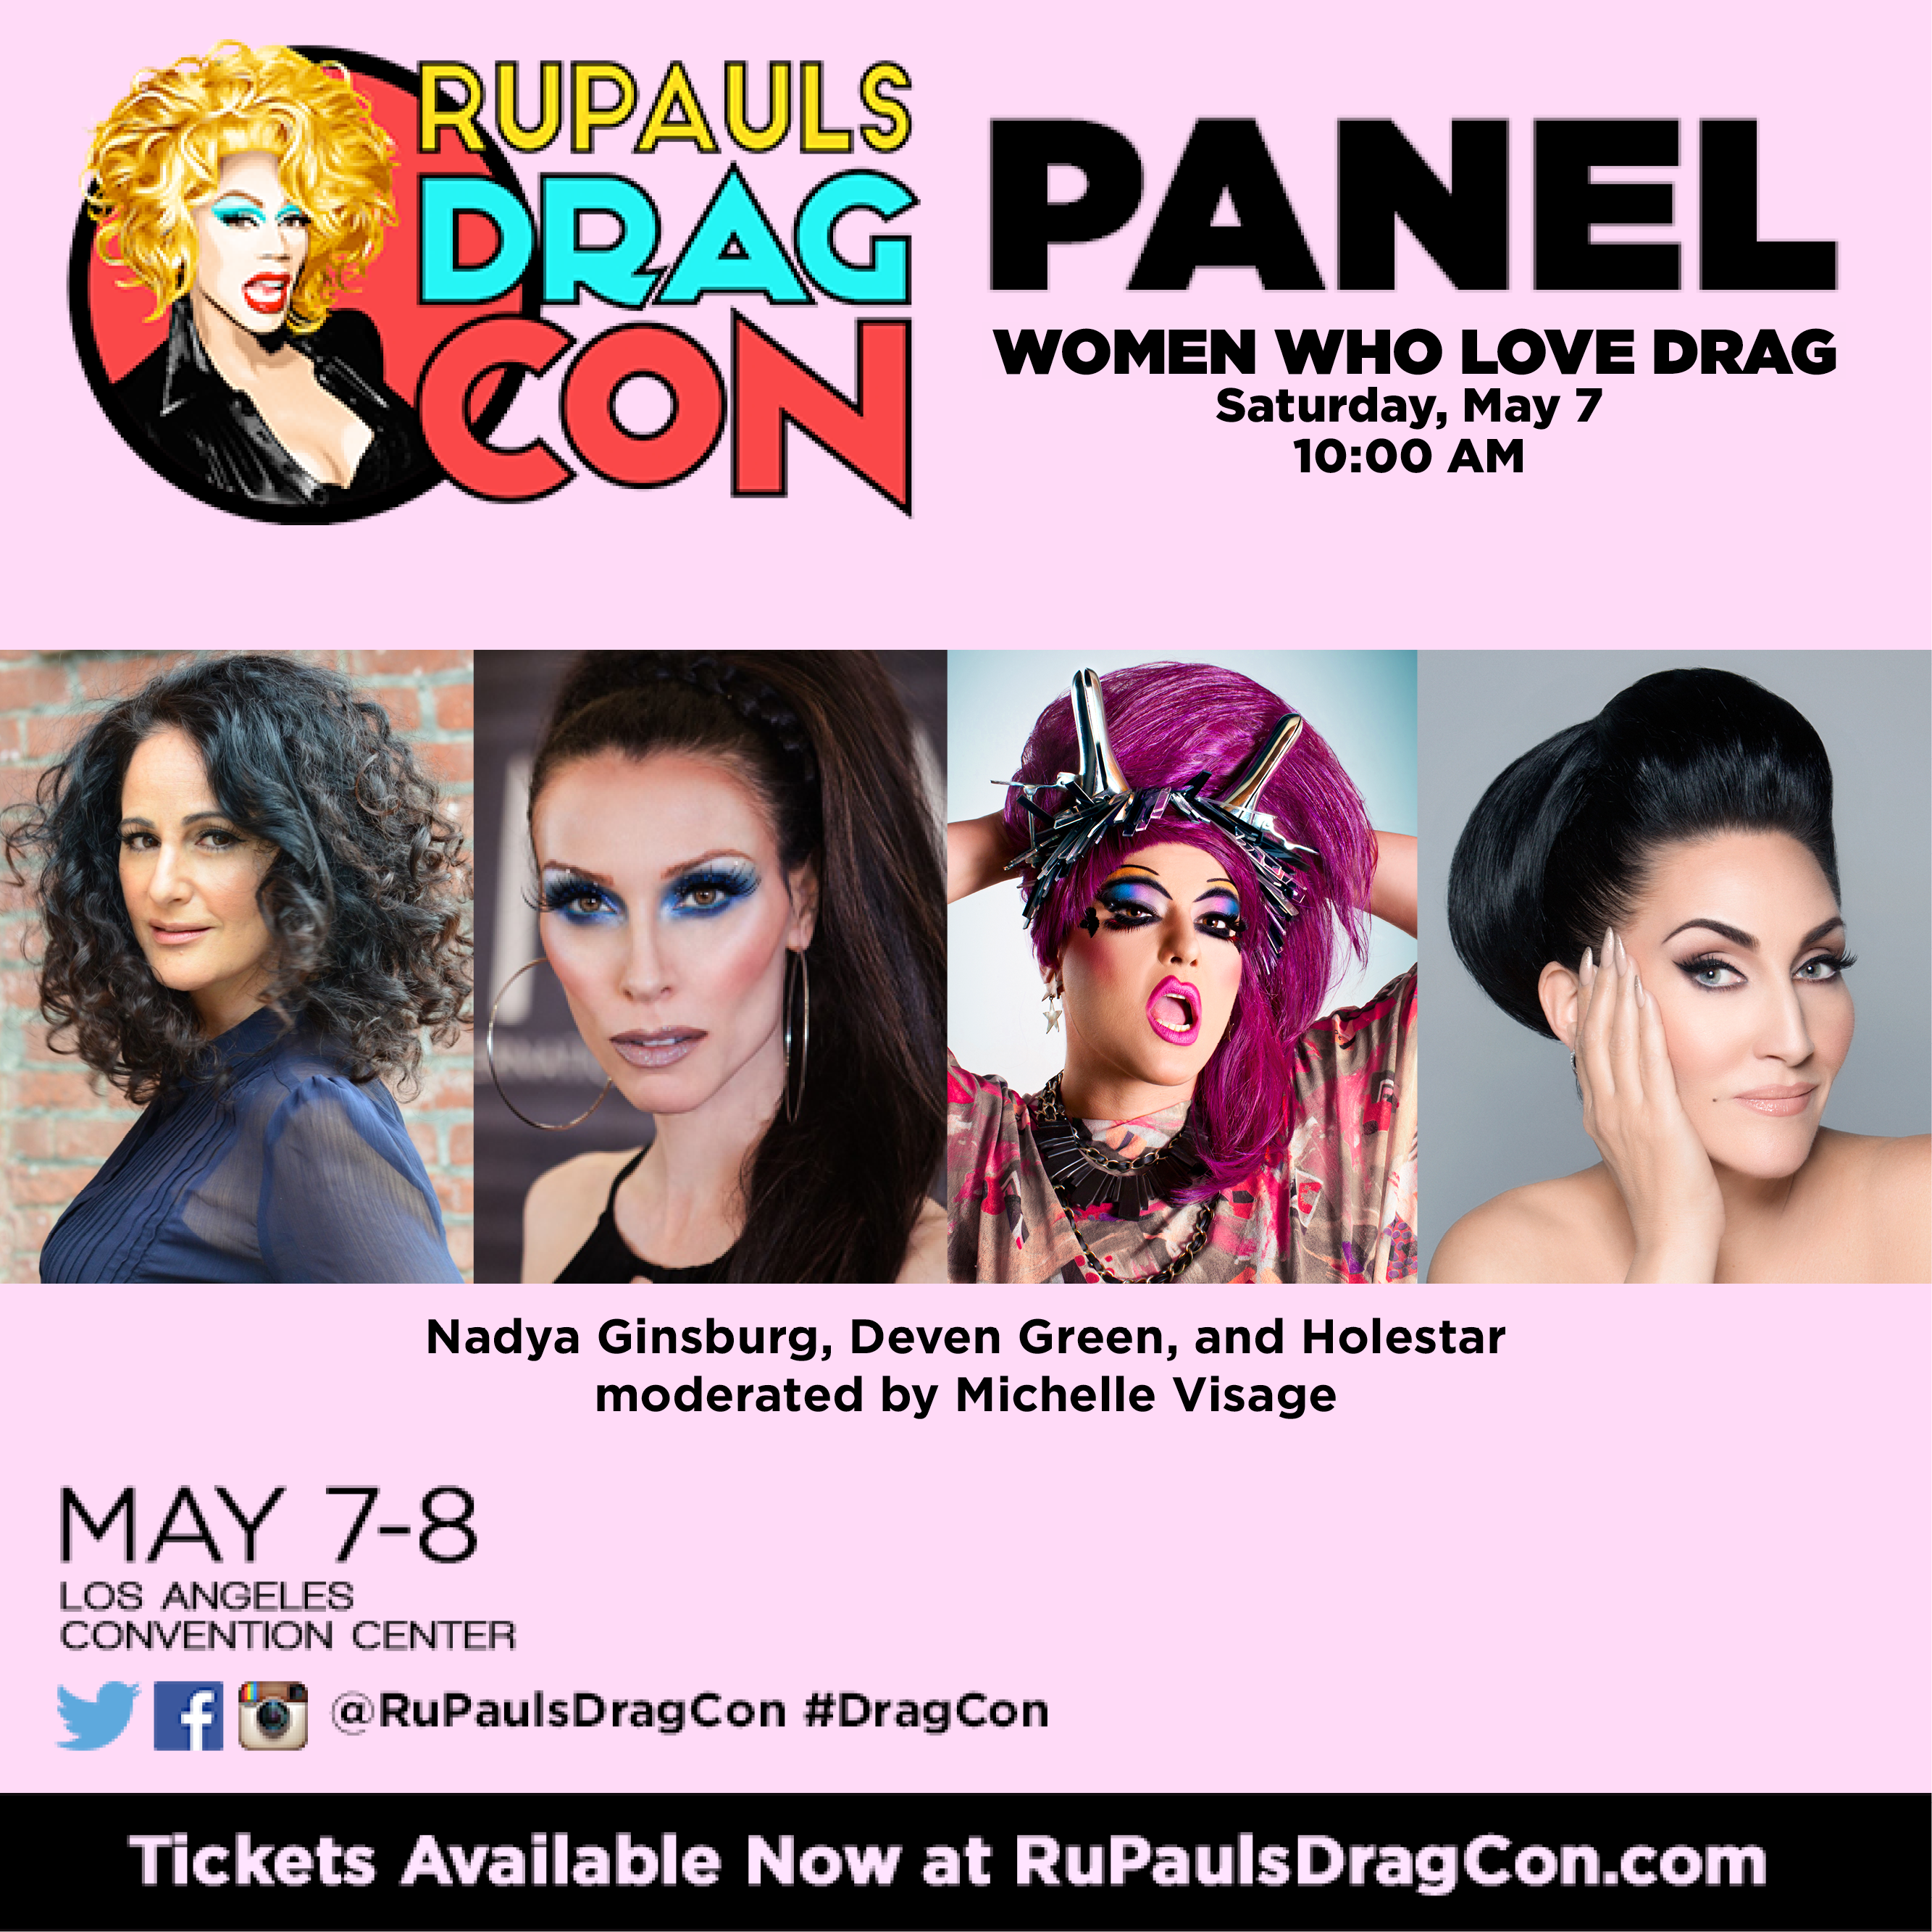 Deven Green Dragcon Panel